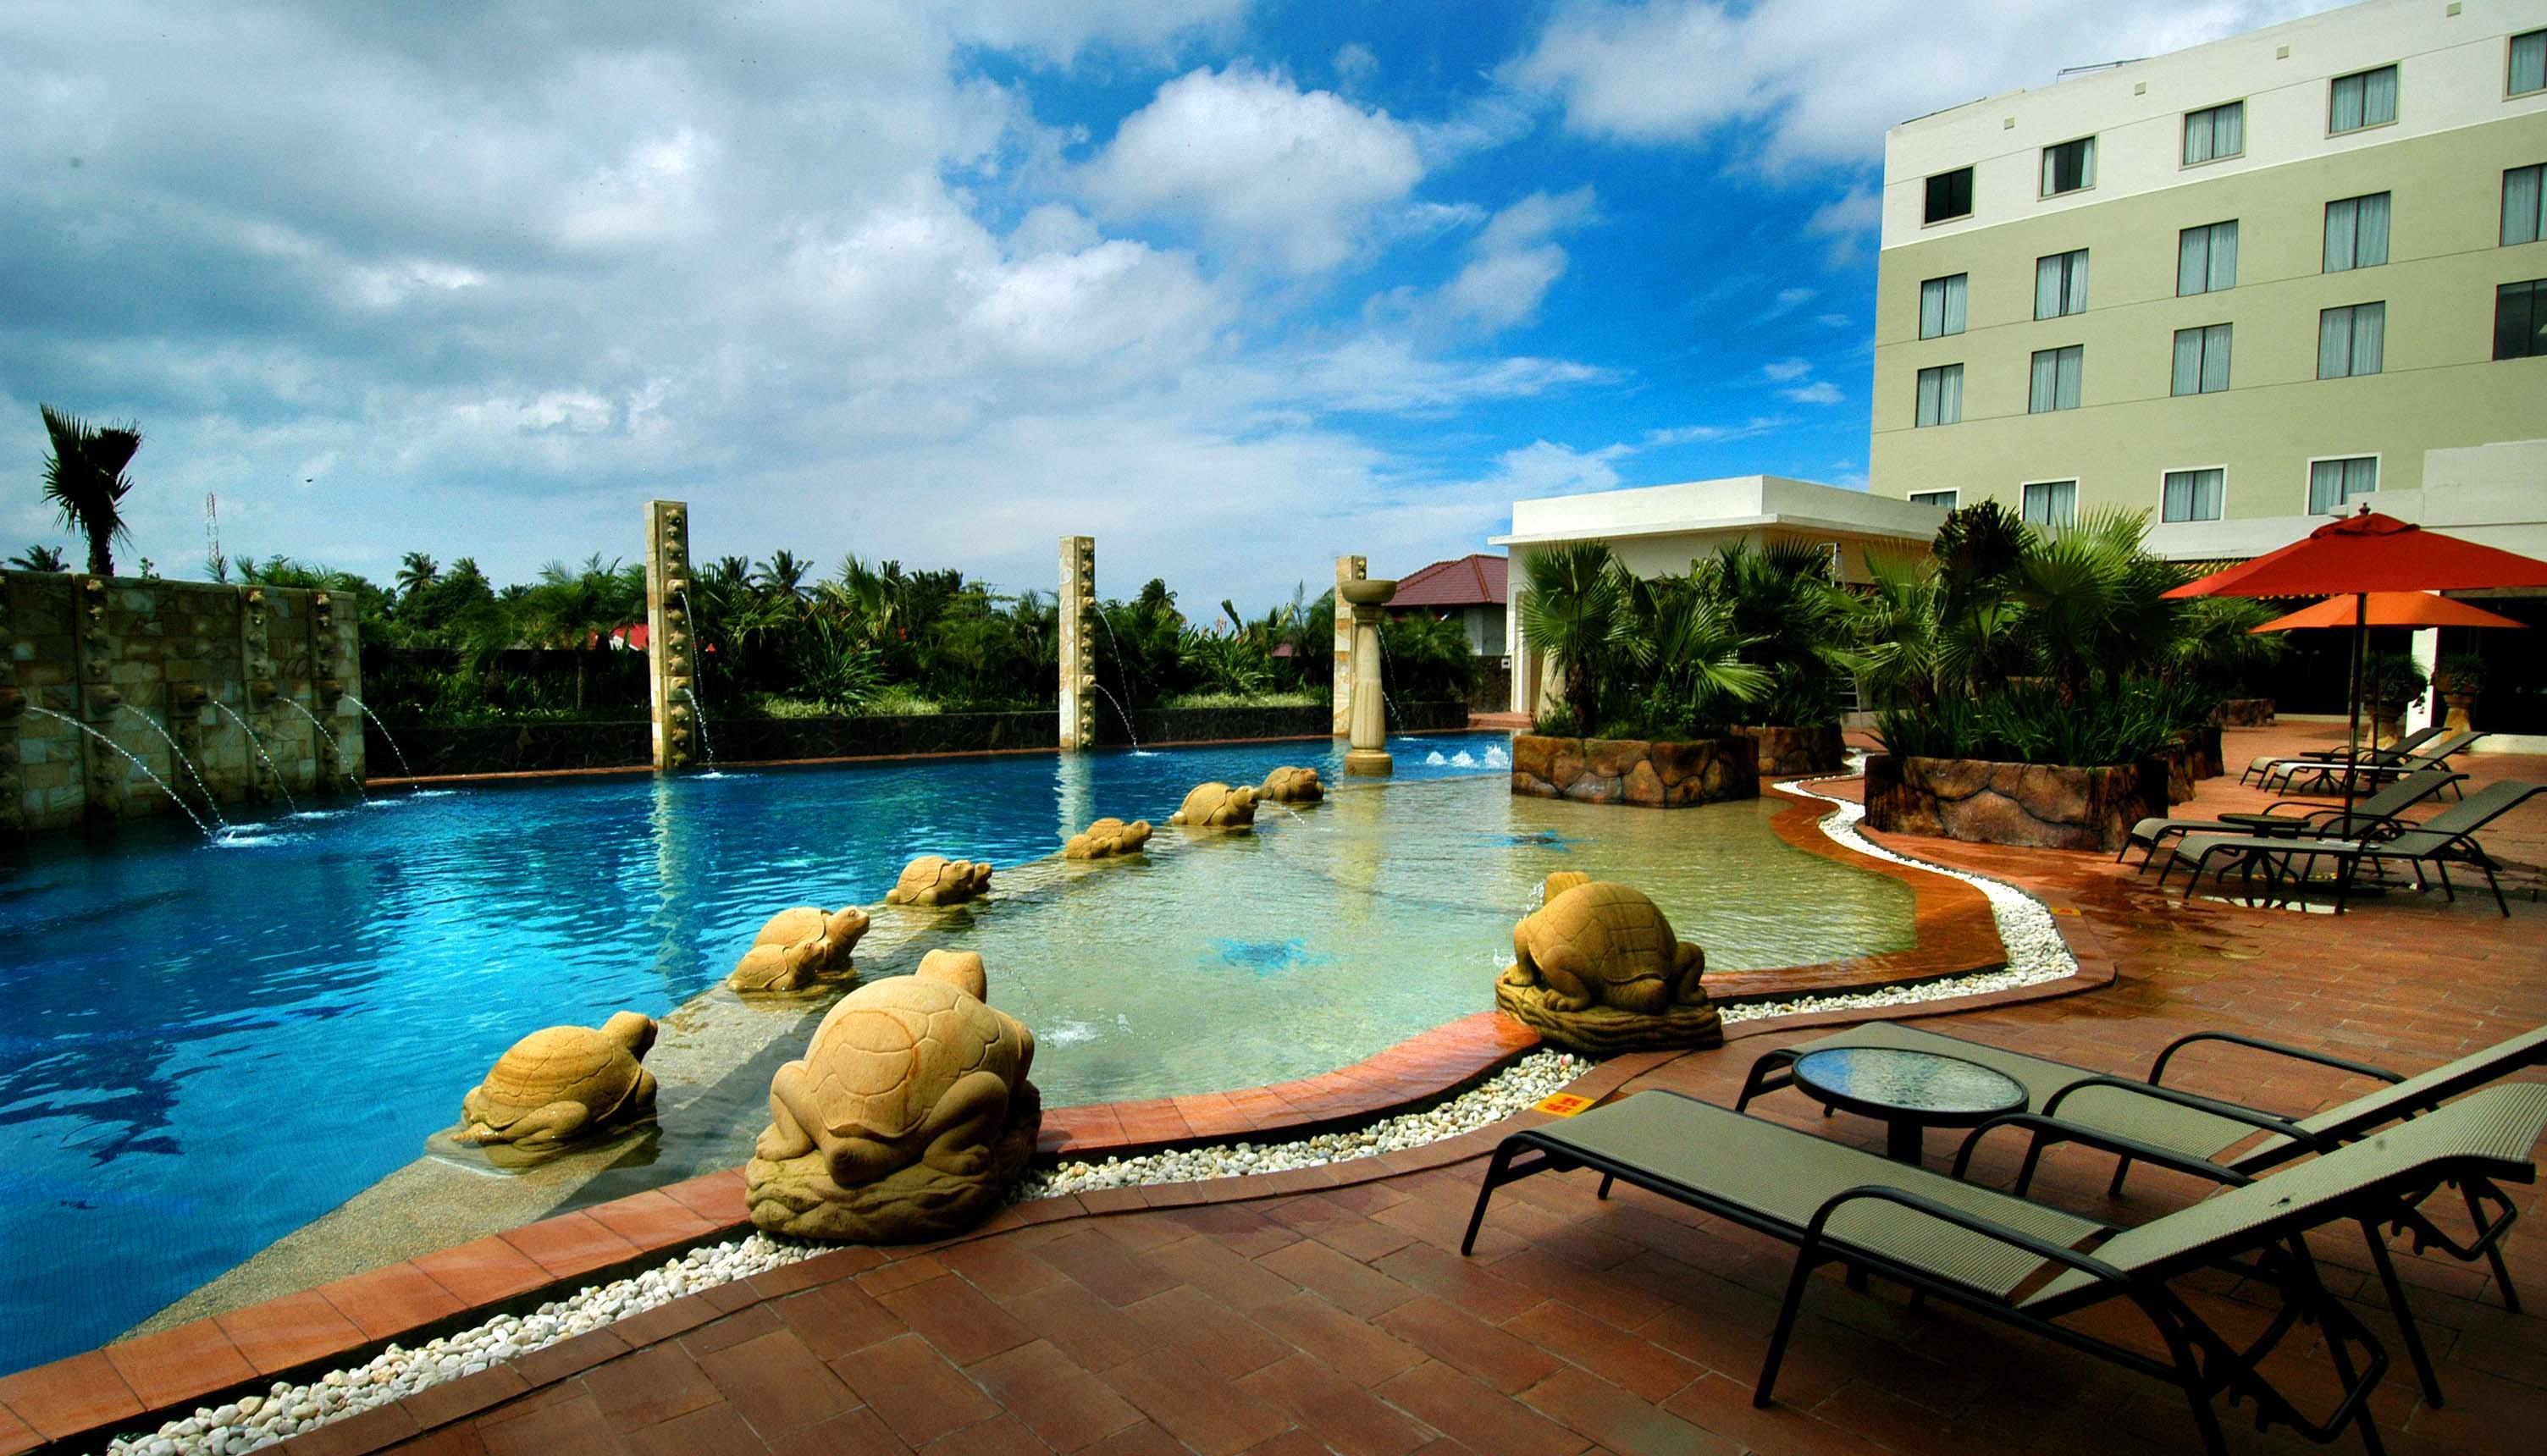 Hermes Palace Hotel Banda Aceh - Managed by Bencoolen